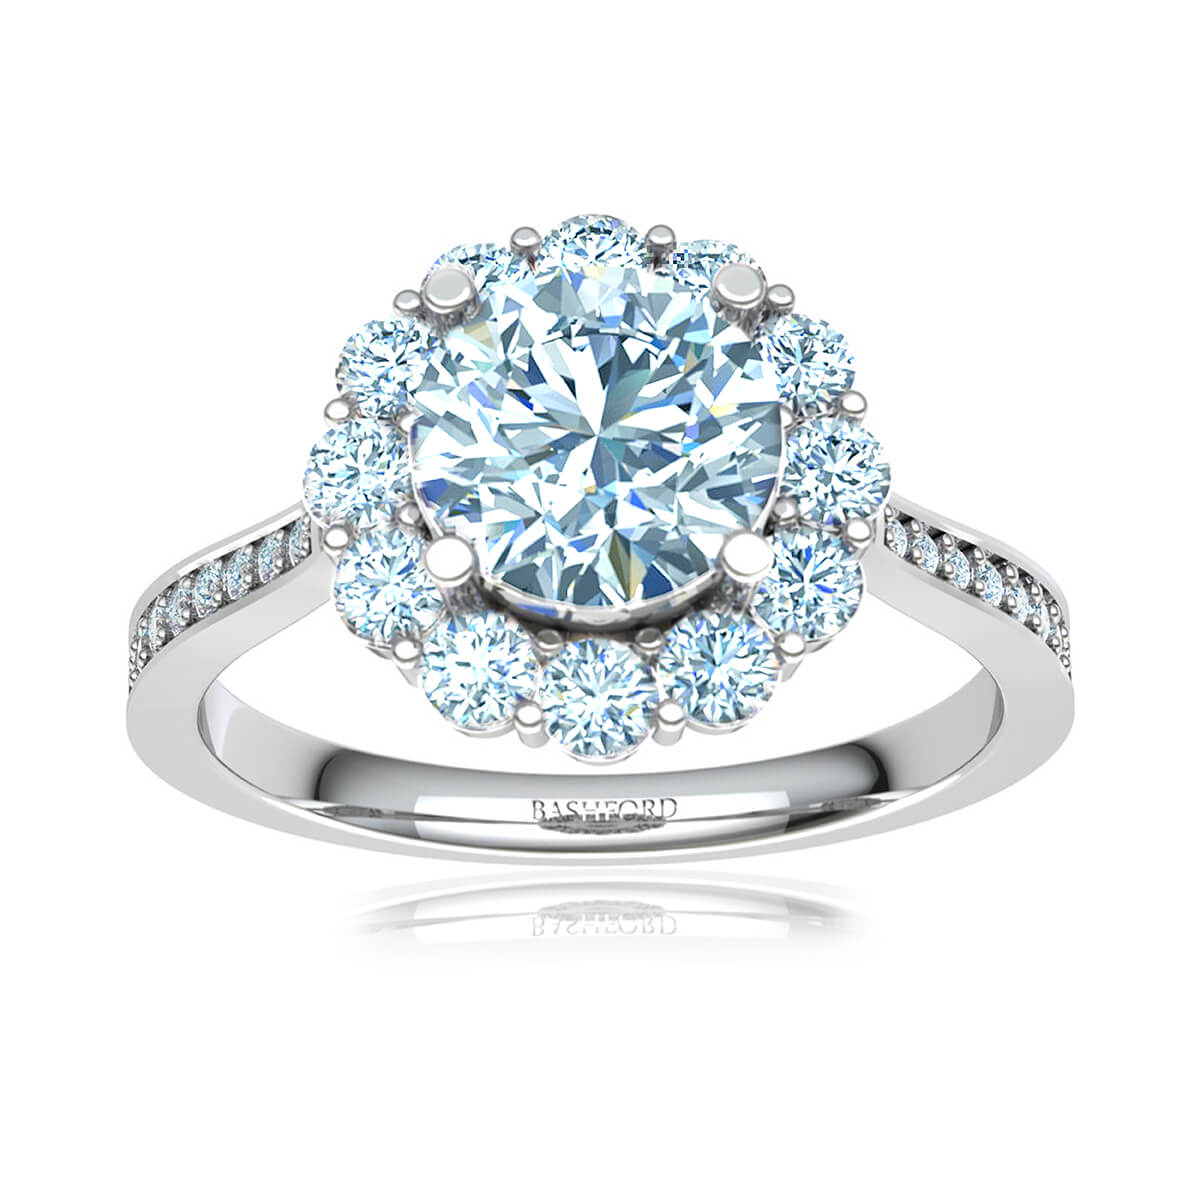 La Pelosa Halo Diamond Ring